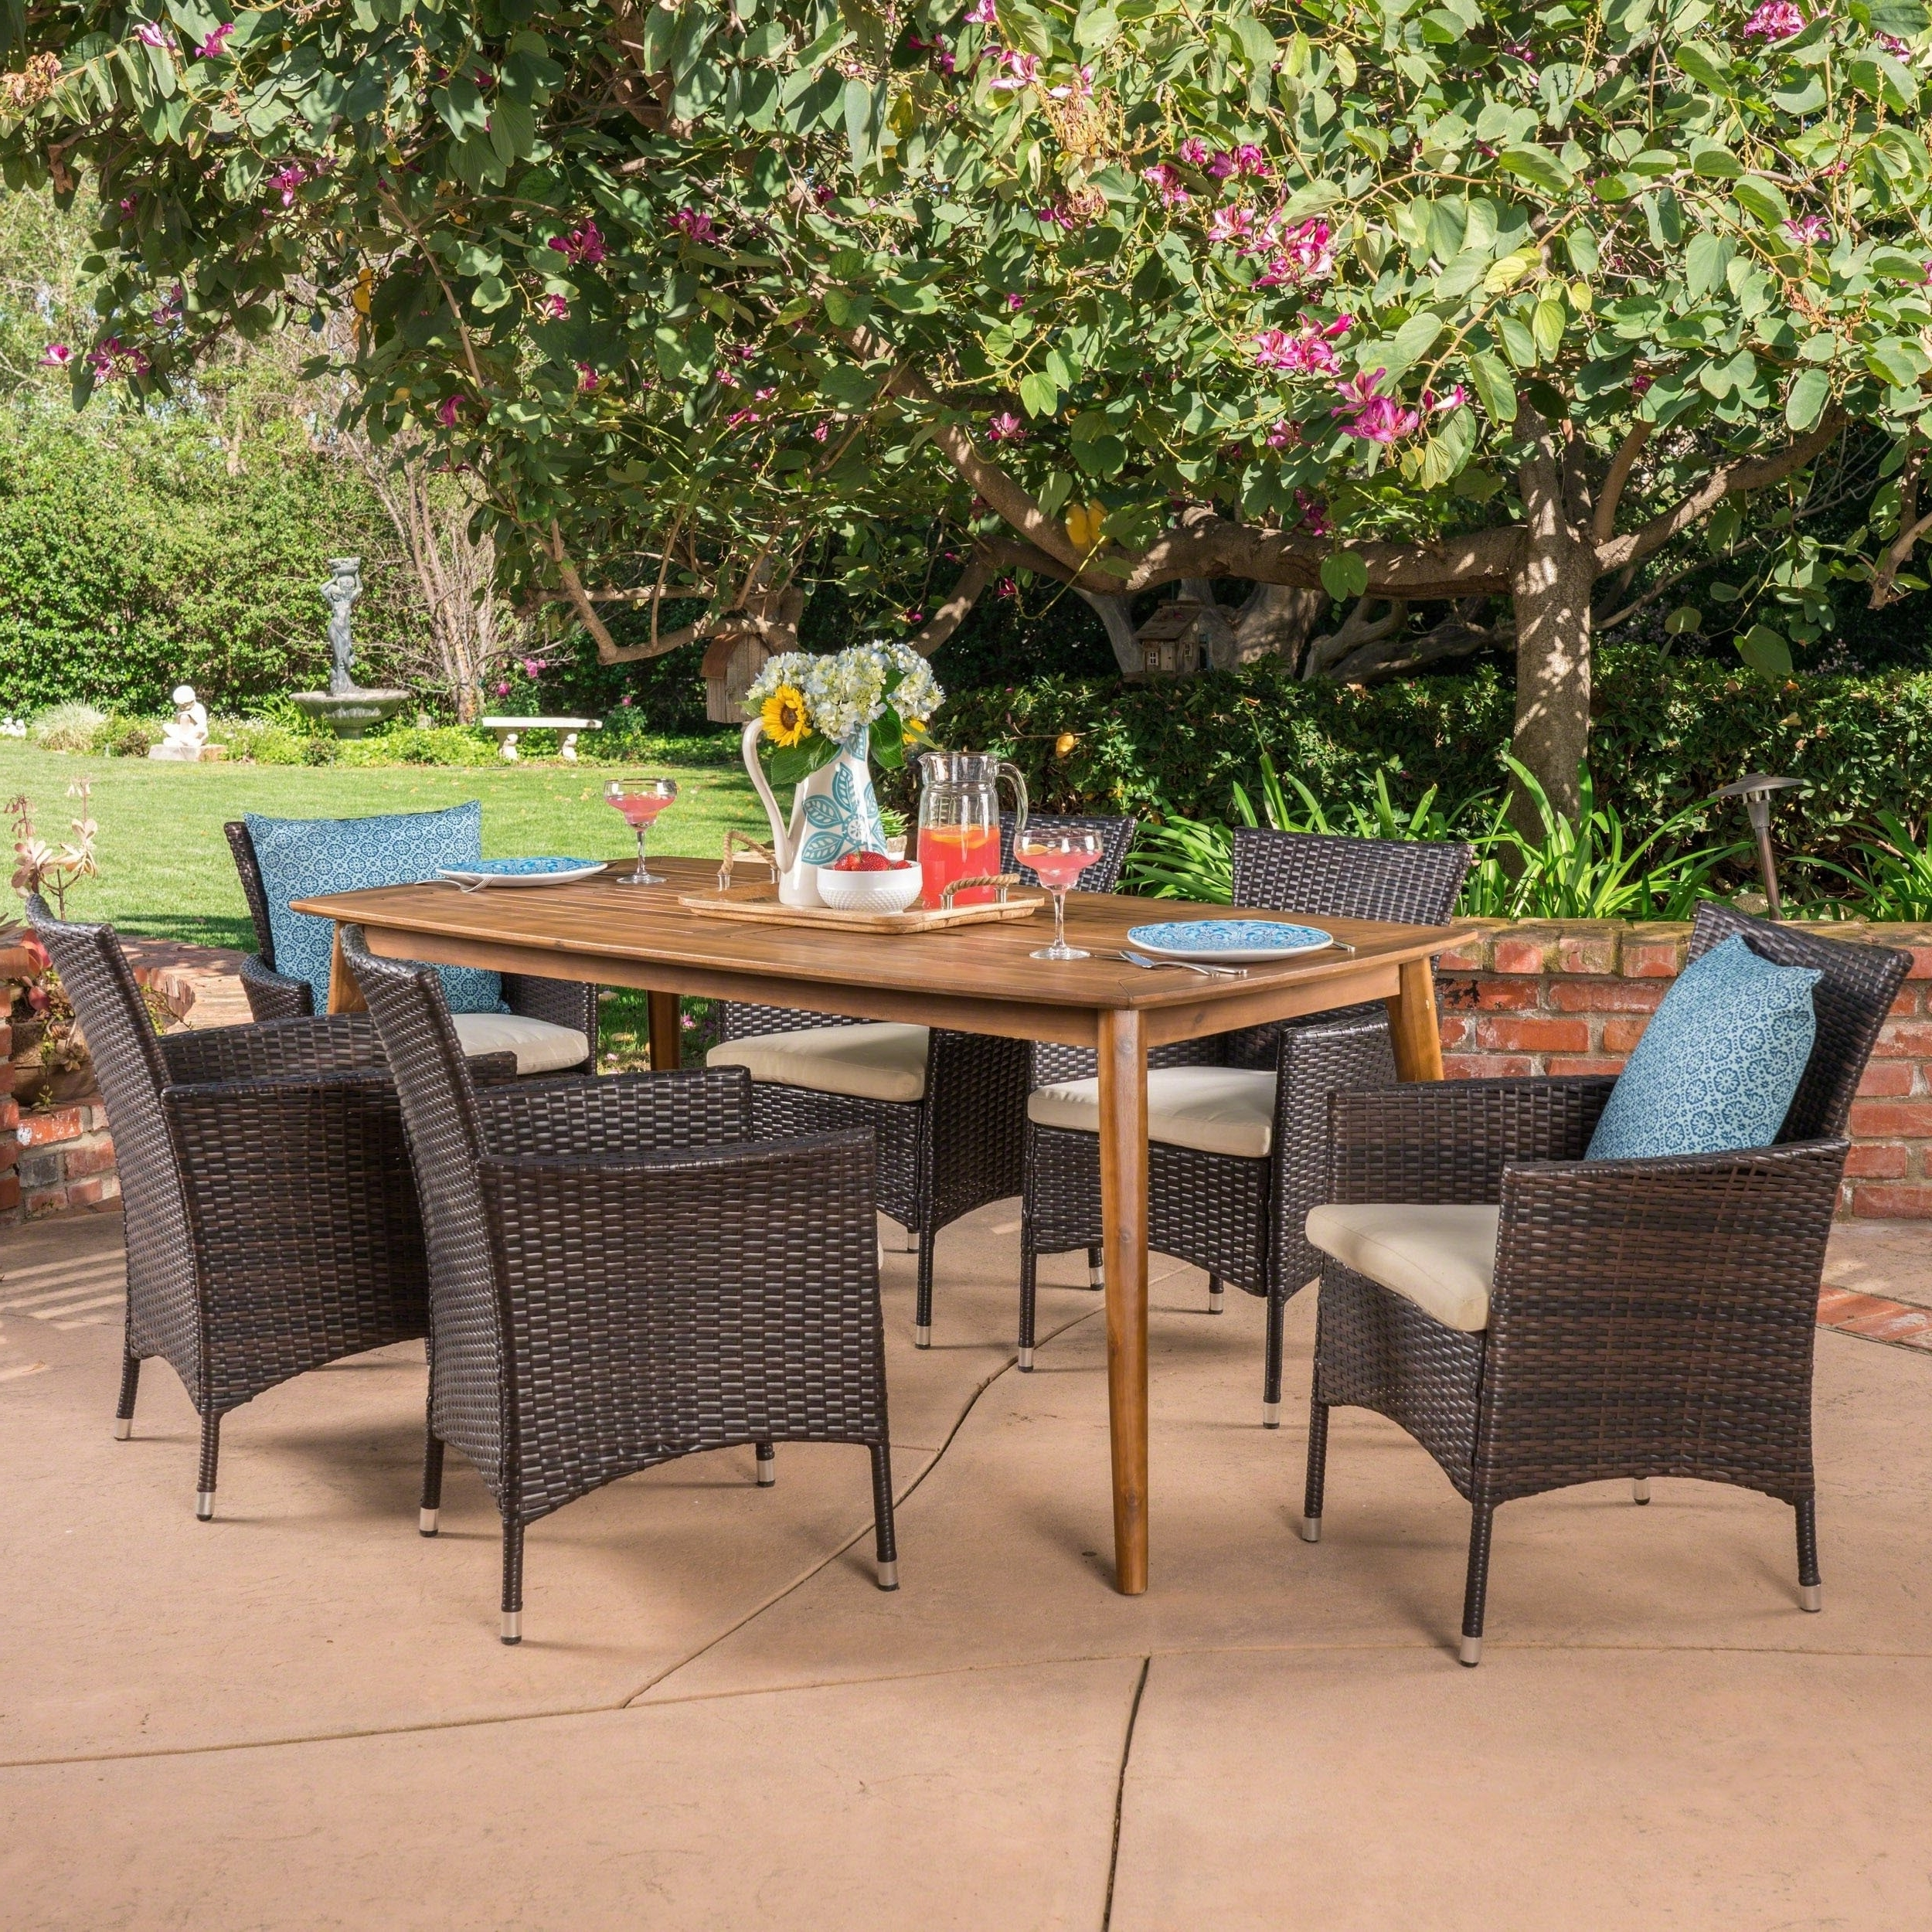 Shop Jaxon Outdoor 7 Piece Multibrown Pe Wicker Dining Set With Within Current Jaxon 7 Piece Rectangle Dining Sets With Upholstered Chairs (View 6 of 25)